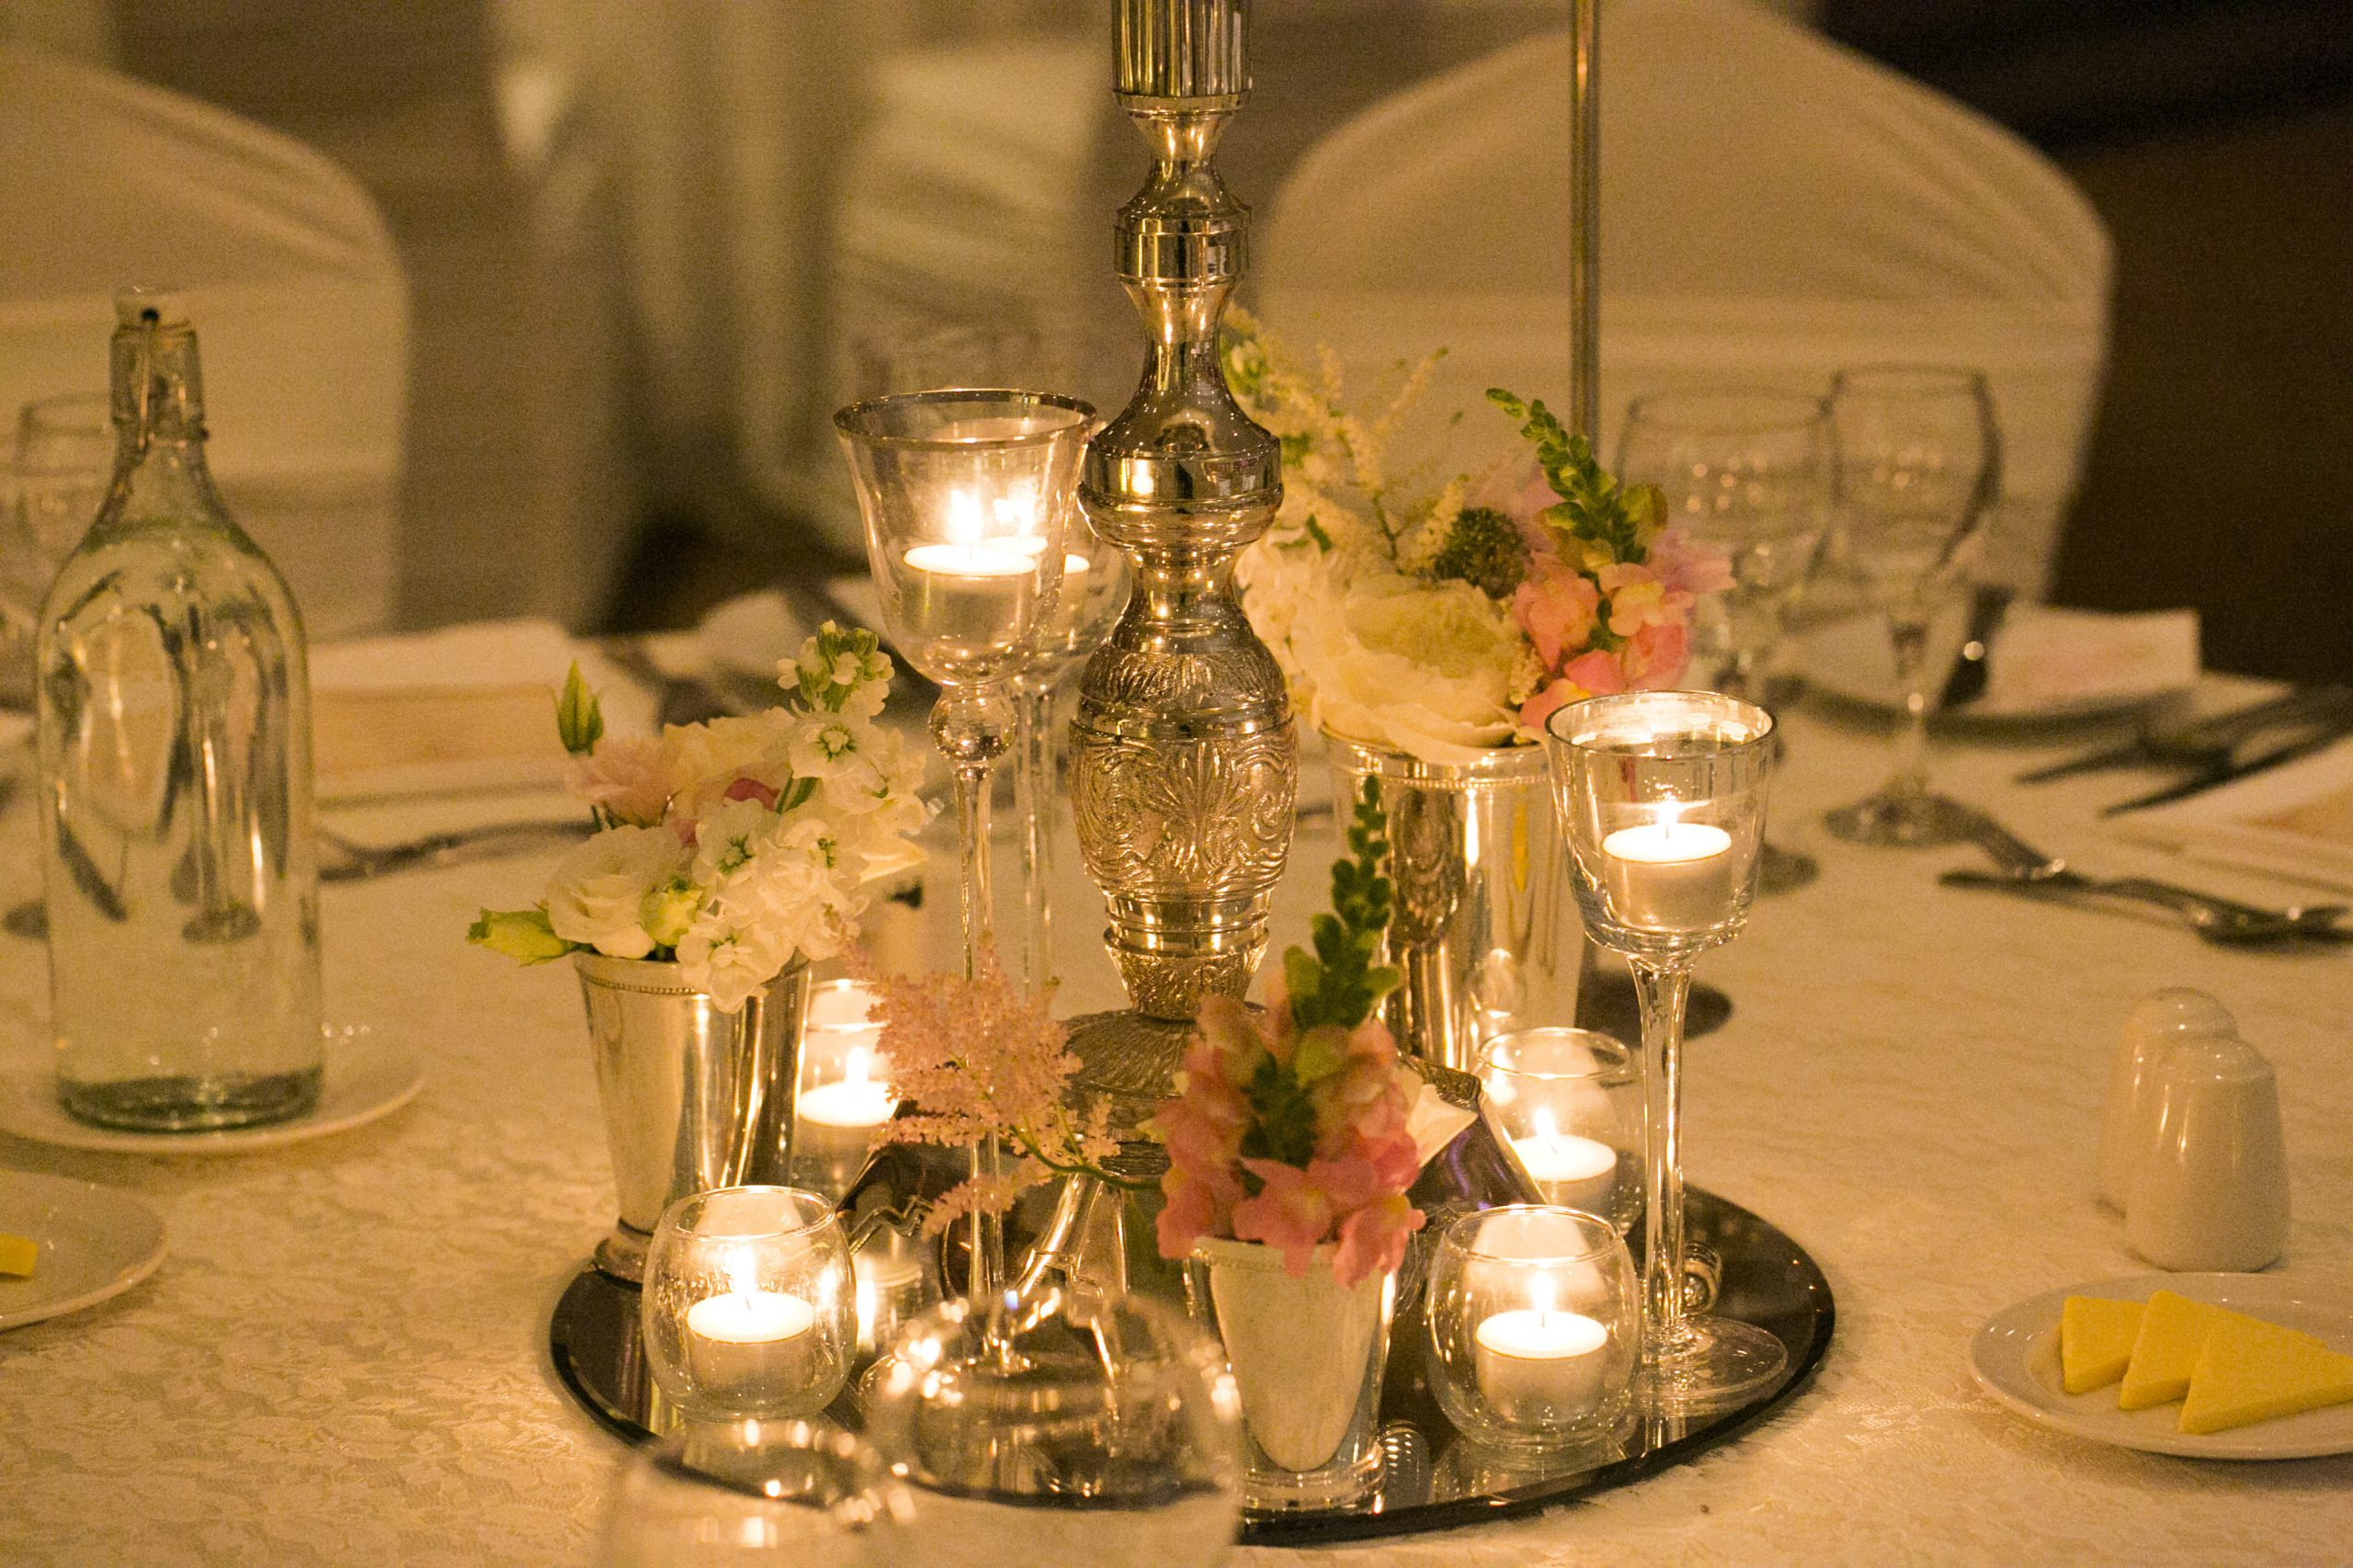 Wedding centerpiece surrounded by floral trickets and high tealights